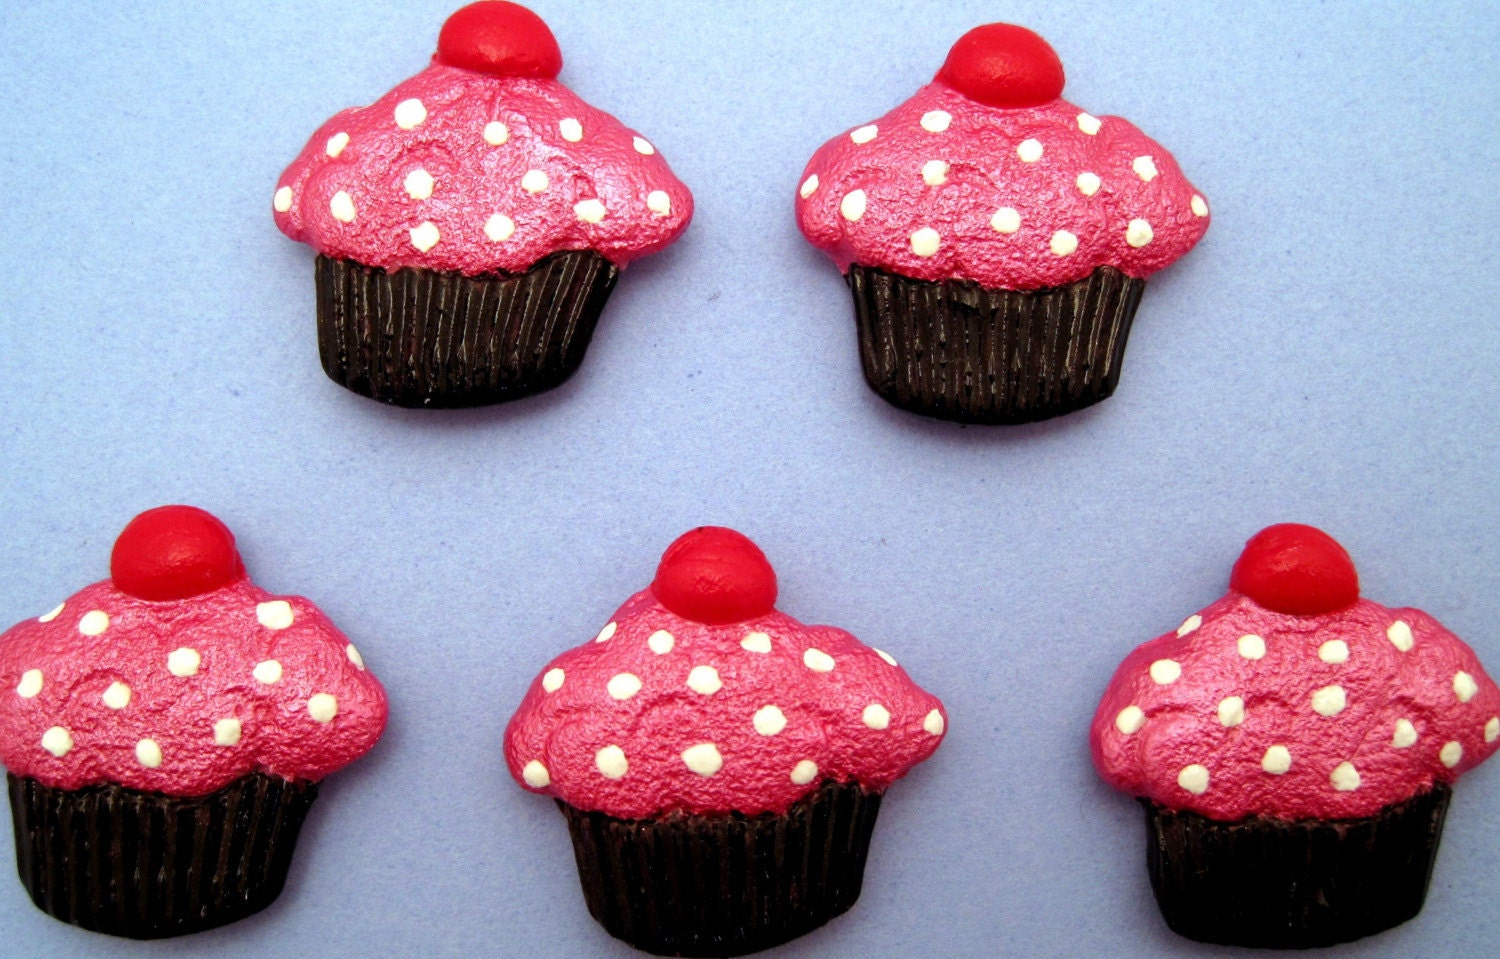 Hot Pink and Black Sprinkle Cupcakes Polymer Clay Magnet Set